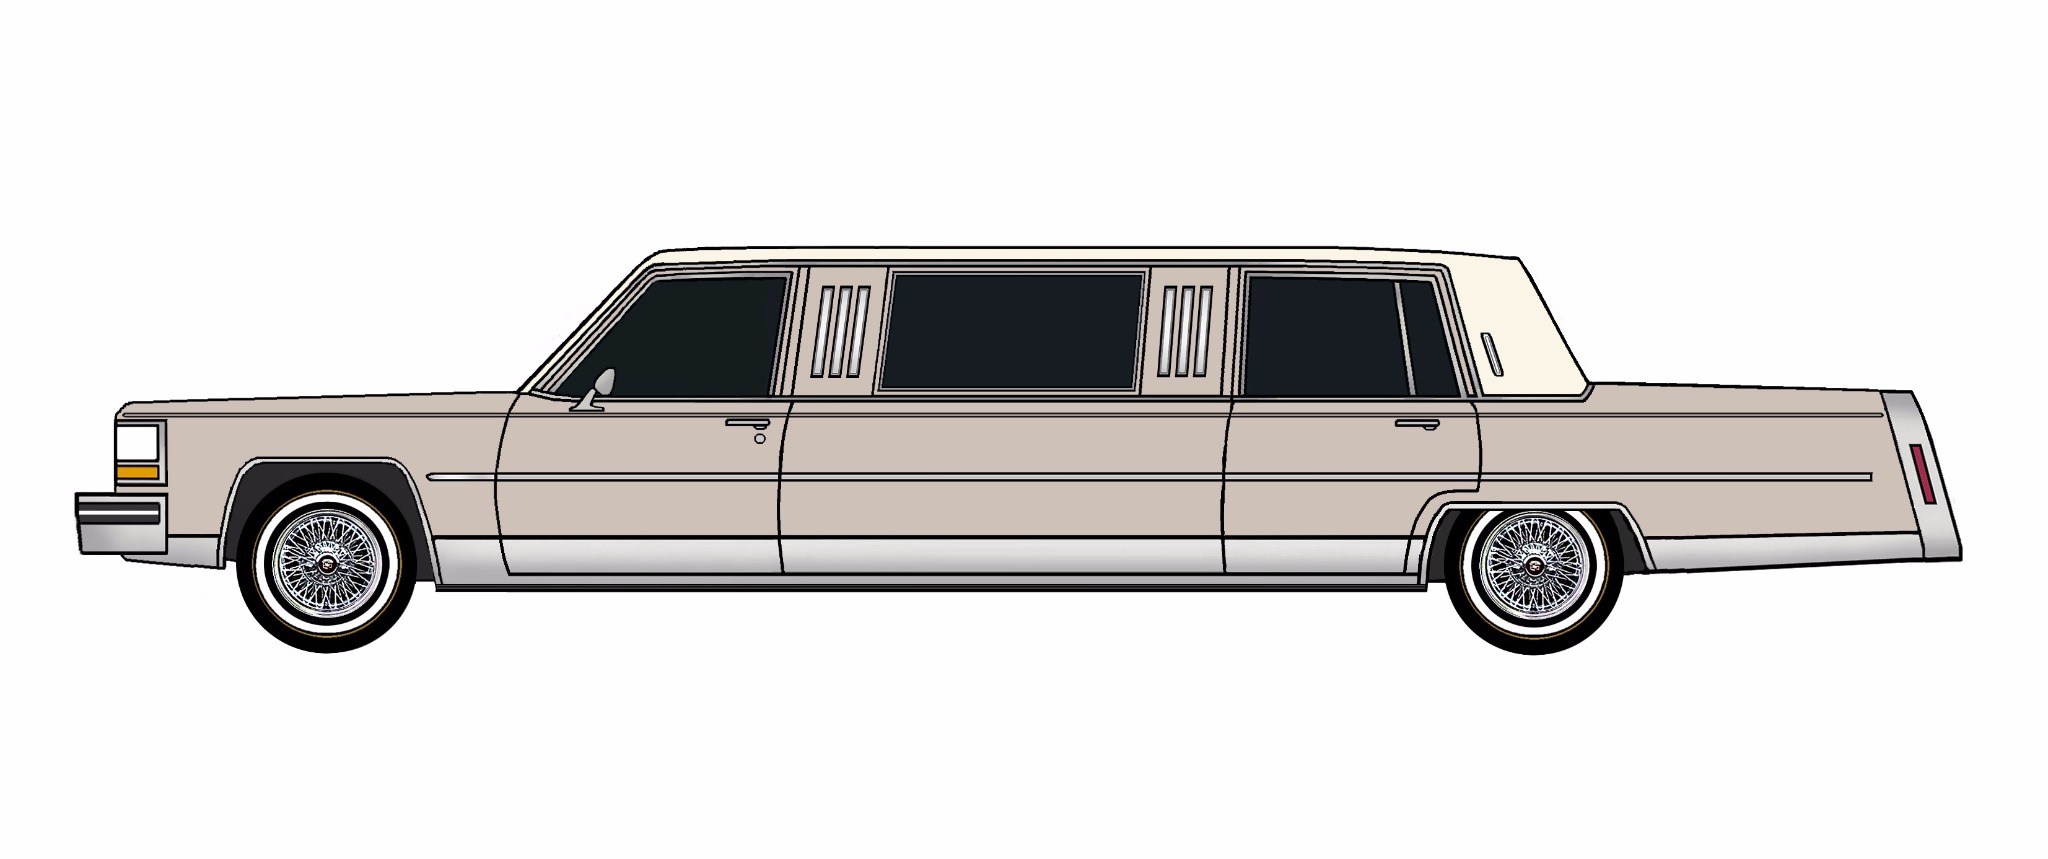 1984 Cadillac Fleetwood Brougham Limo LAVENDER